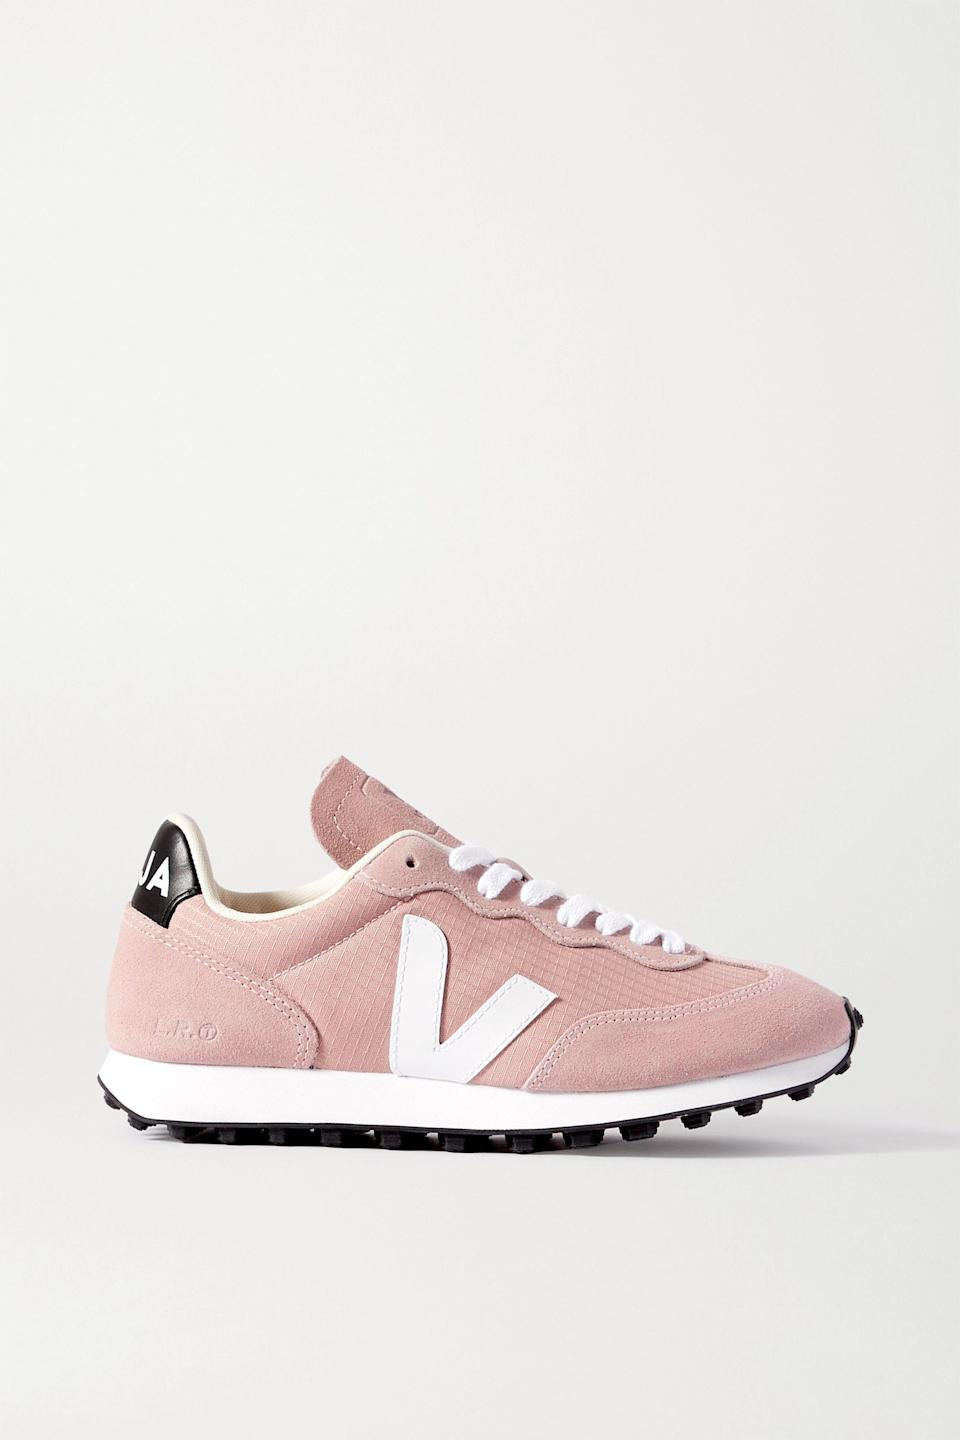 """<p><strong>VEJA</strong></p><p>net-a-porter.com</p><p><strong>$84.00</strong></p><p><a href=""""https://go.redirectingat.com?id=74968X1596630&url=https%3A%2F%2Fwww.net-a-porter.com%2Fen-us%2Fshop%2Fproduct%2Fveja%2Fshoes%2Flow-top%2Fplus-net-sustain-rio-branco-leather-trimmed-suede-and-mesh-sneakers%2F22527730566102685&sref=https%3A%2F%2Fwww.cosmopolitan.com%2Fstyle-beauty%2Ffashion%2Fg36618322%2Fnet-a-porter-spring-sale-2021%2F"""" rel=""""nofollow noopener"""" target=""""_blank"""" data-ylk=""""slk:Shop Now"""" class=""""link rapid-noclick-resp"""">Shop Now</a></p><p>Meghan Markle <em>adores </em><a href=""""https://www.cosmopolitan.com/style-beauty/fashion/a32935204/meghan-markle-veja-sneaker-sale/"""" rel=""""nofollow noopener"""" target=""""_blank"""" data-ylk=""""slk:Veja"""" class=""""link rapid-noclick-resp"""">Veja</a>...and that's all I really gotta say. These sneaks usually go for more than a hundred bucks, so I'd buy 'em ASAP while they have this (temporary) drool-worthy price tag.</p>"""